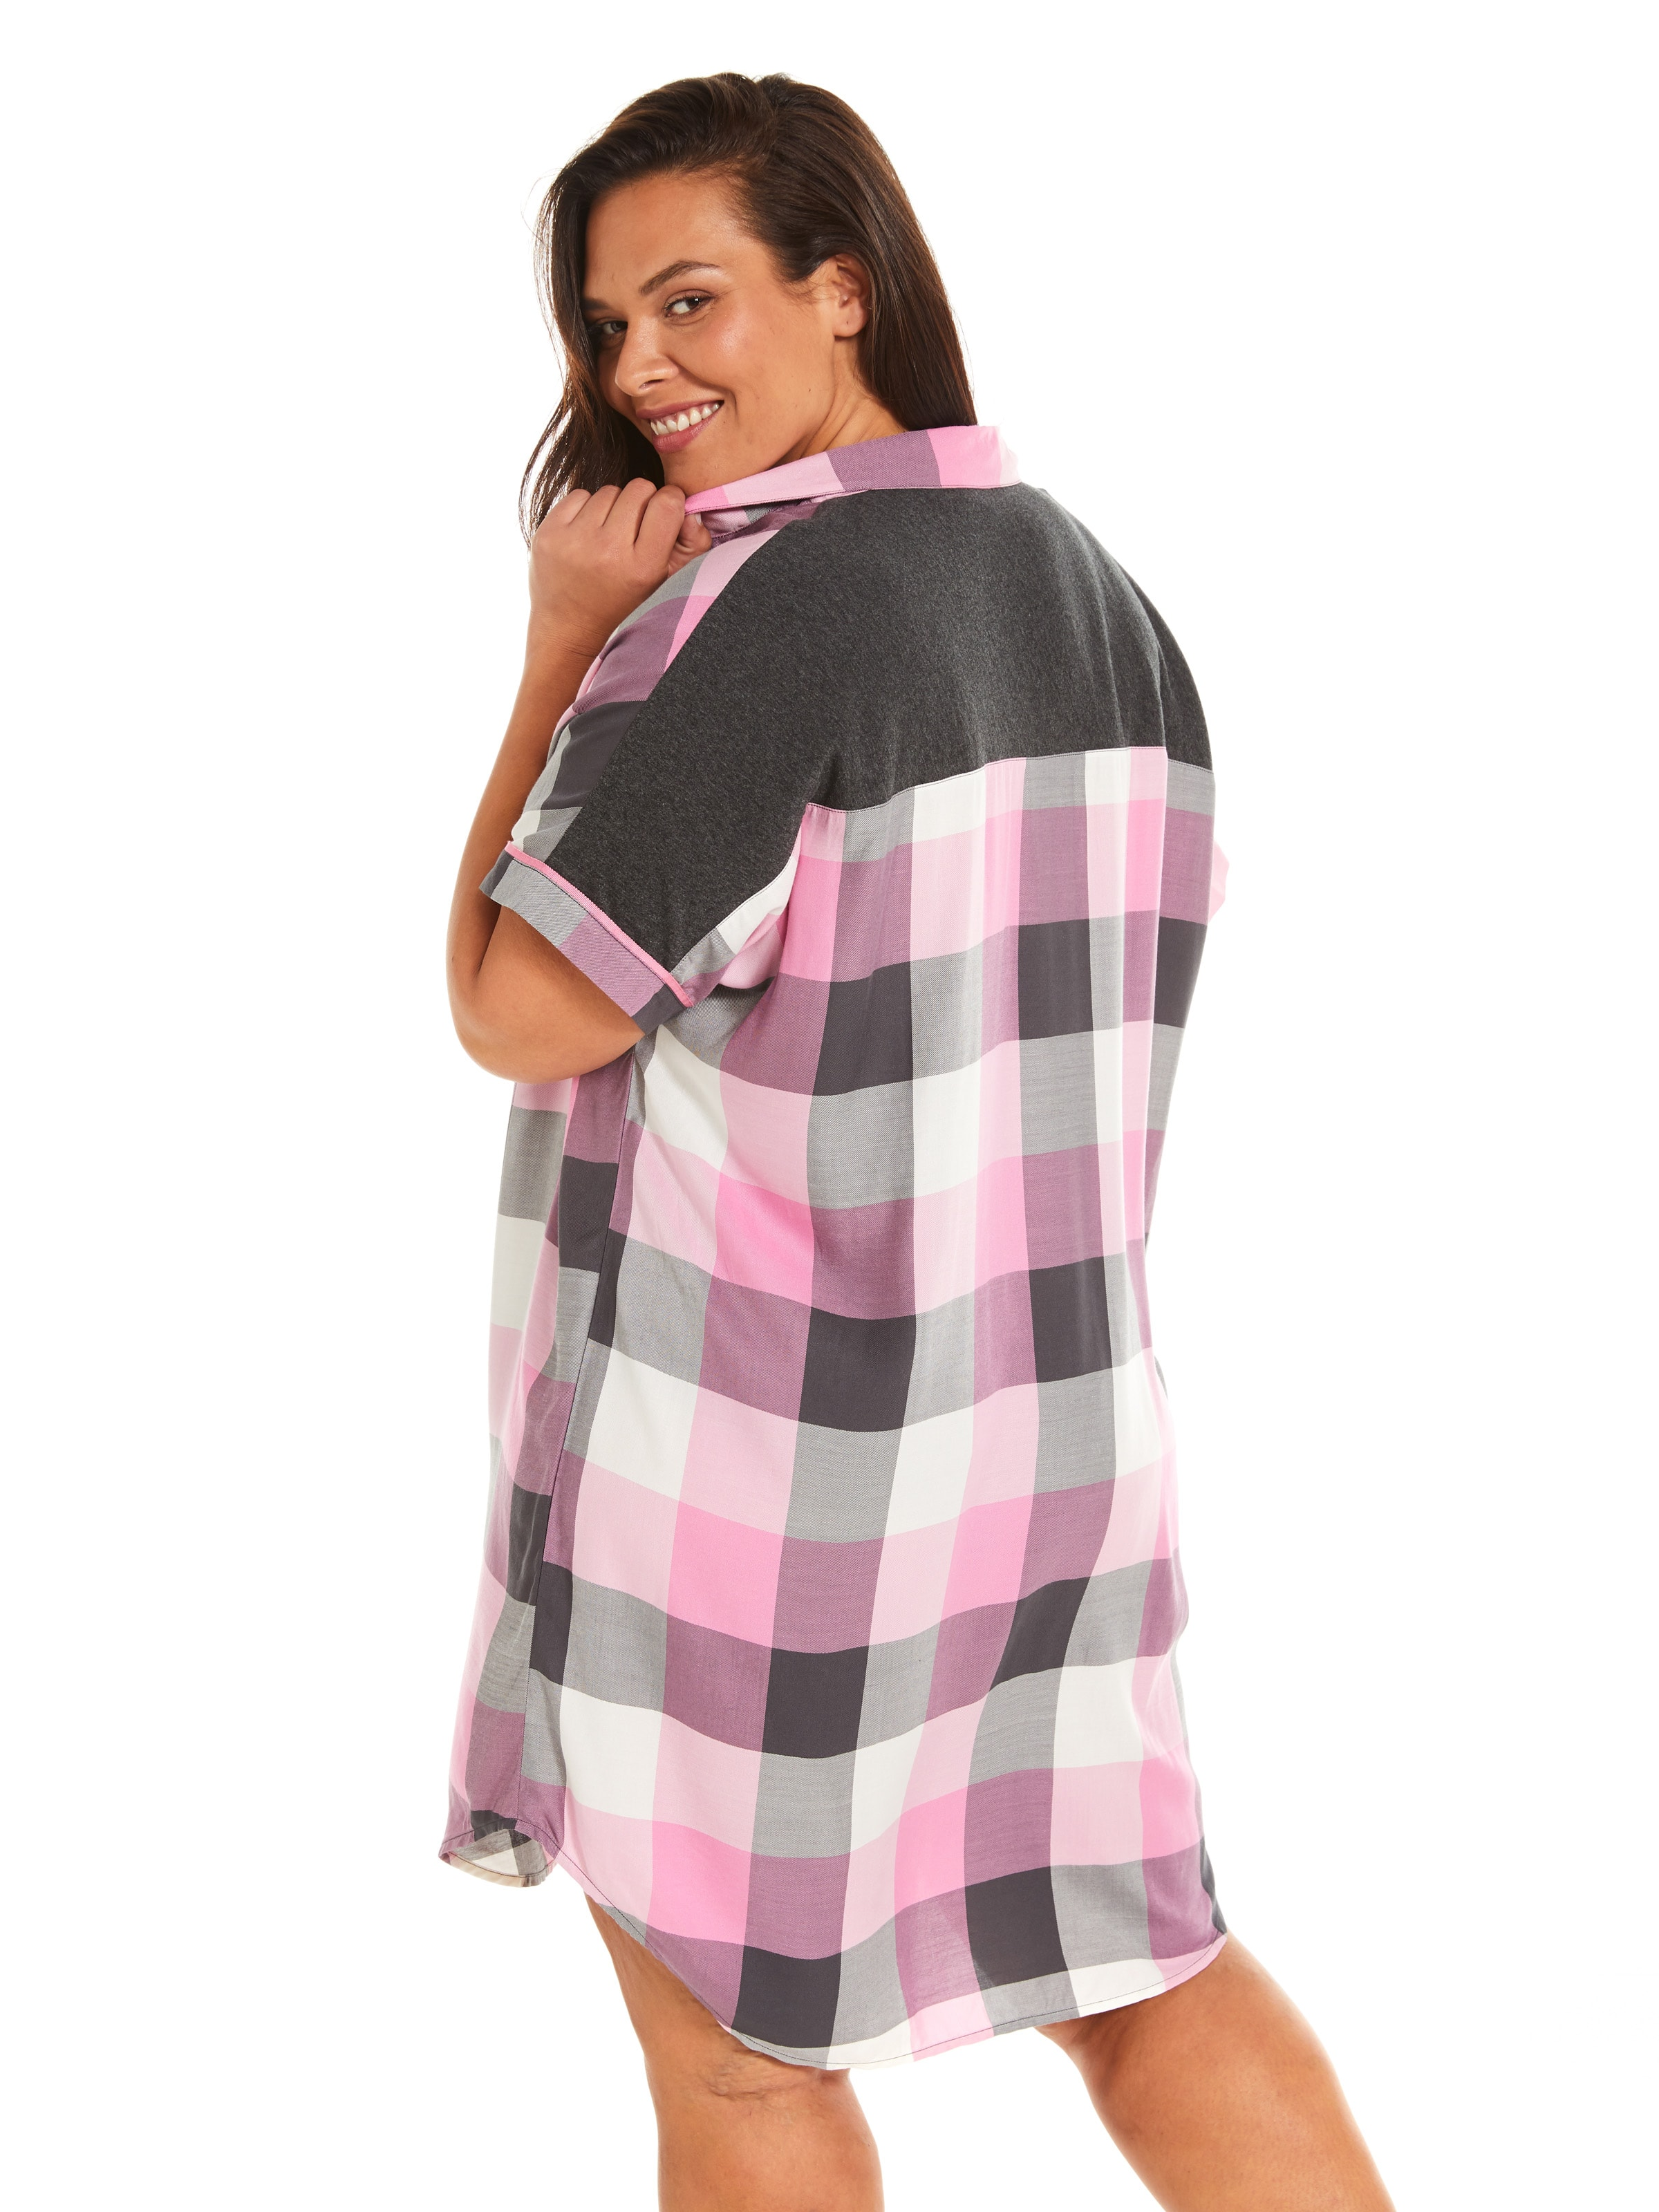 P.A. Plus Charcoal Buffalo Check Nightshirt